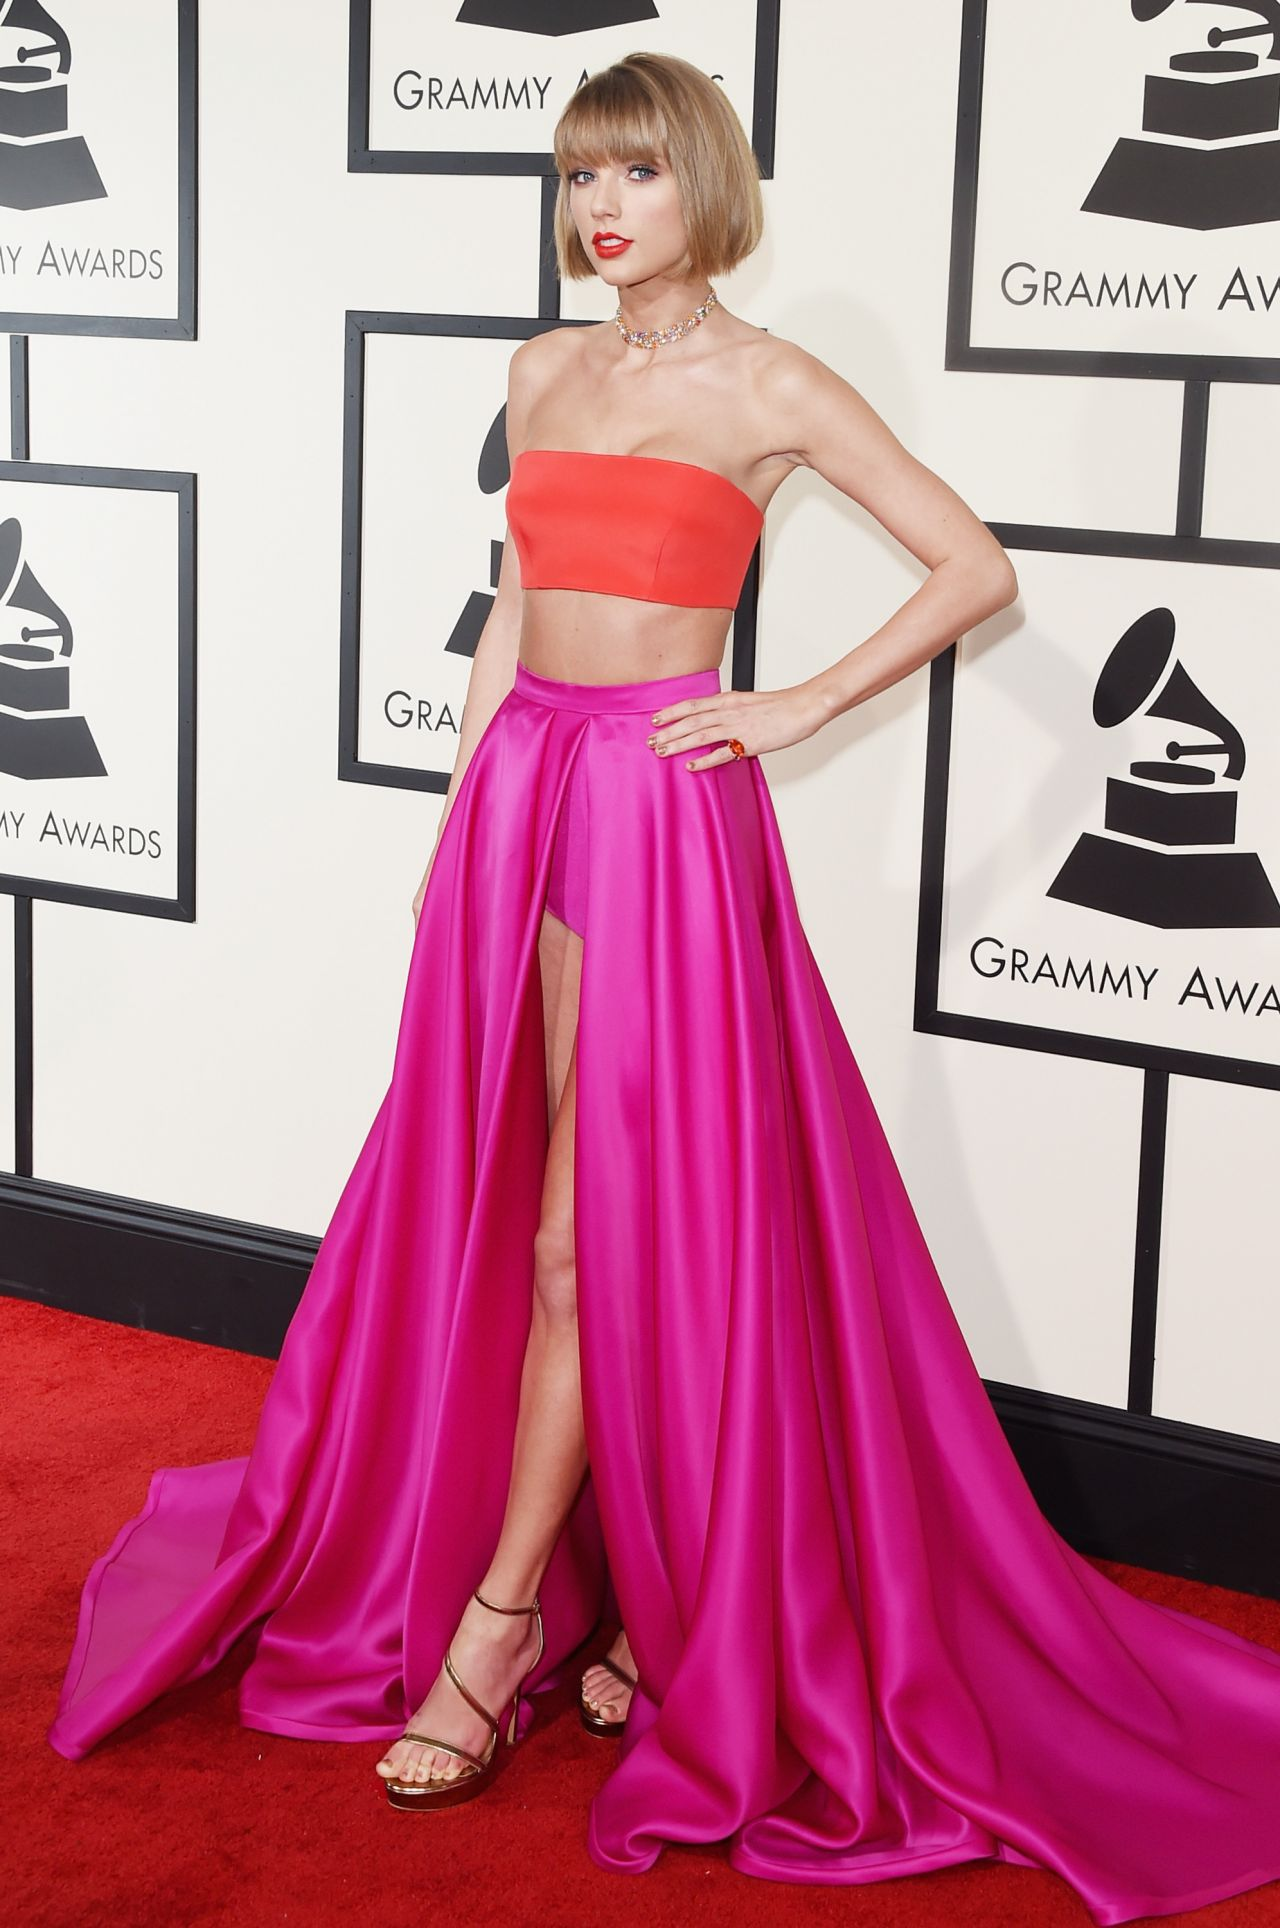 taylor-swift-2016-grammy-awards-in-los-angeles-ca-7